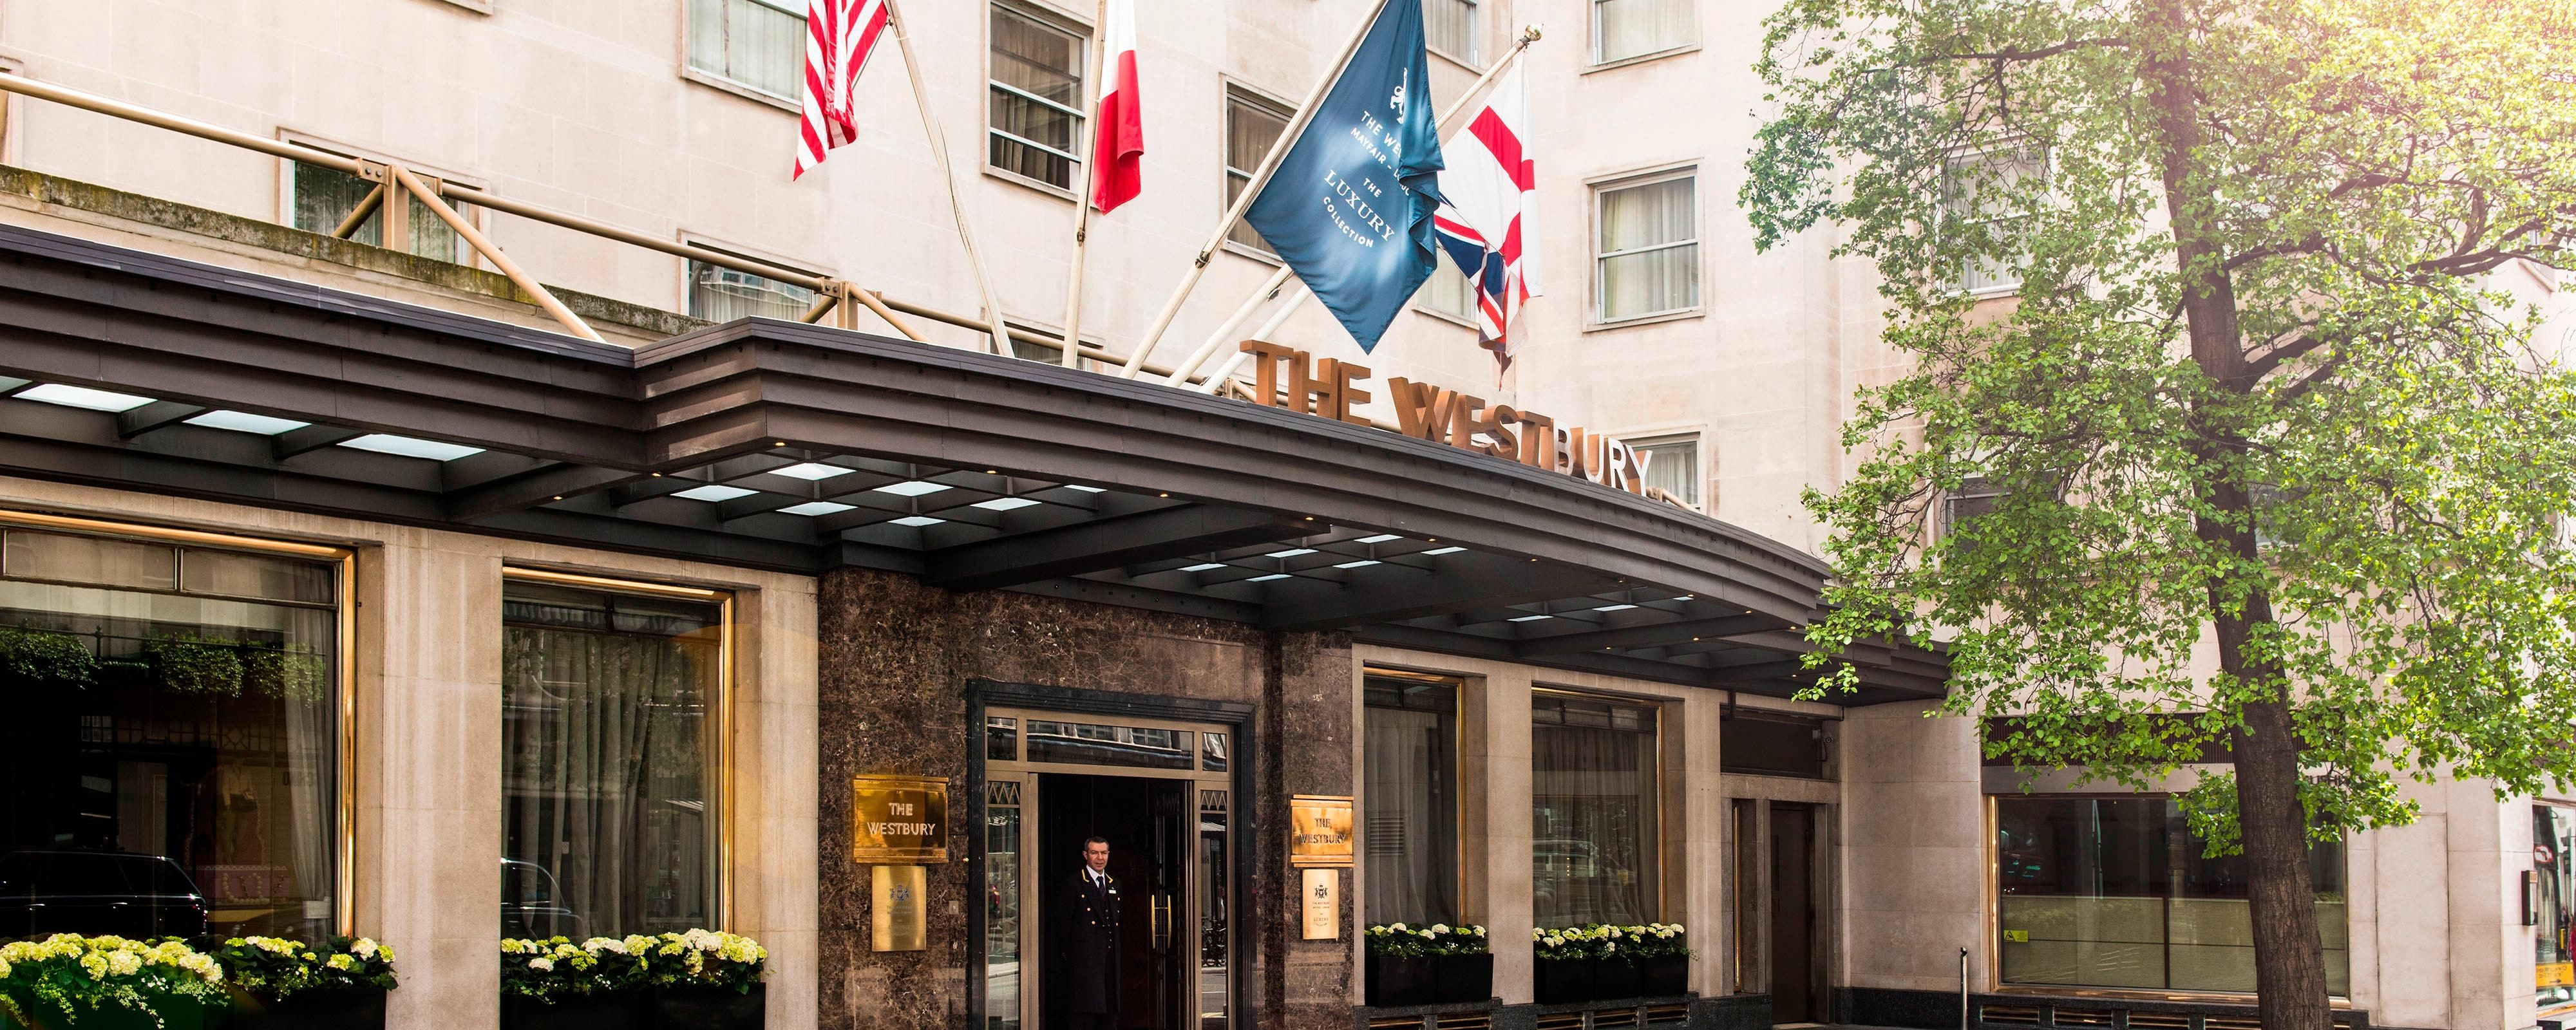 Luxury Hotels & Resorts in London | The Westbury Mayfair, a